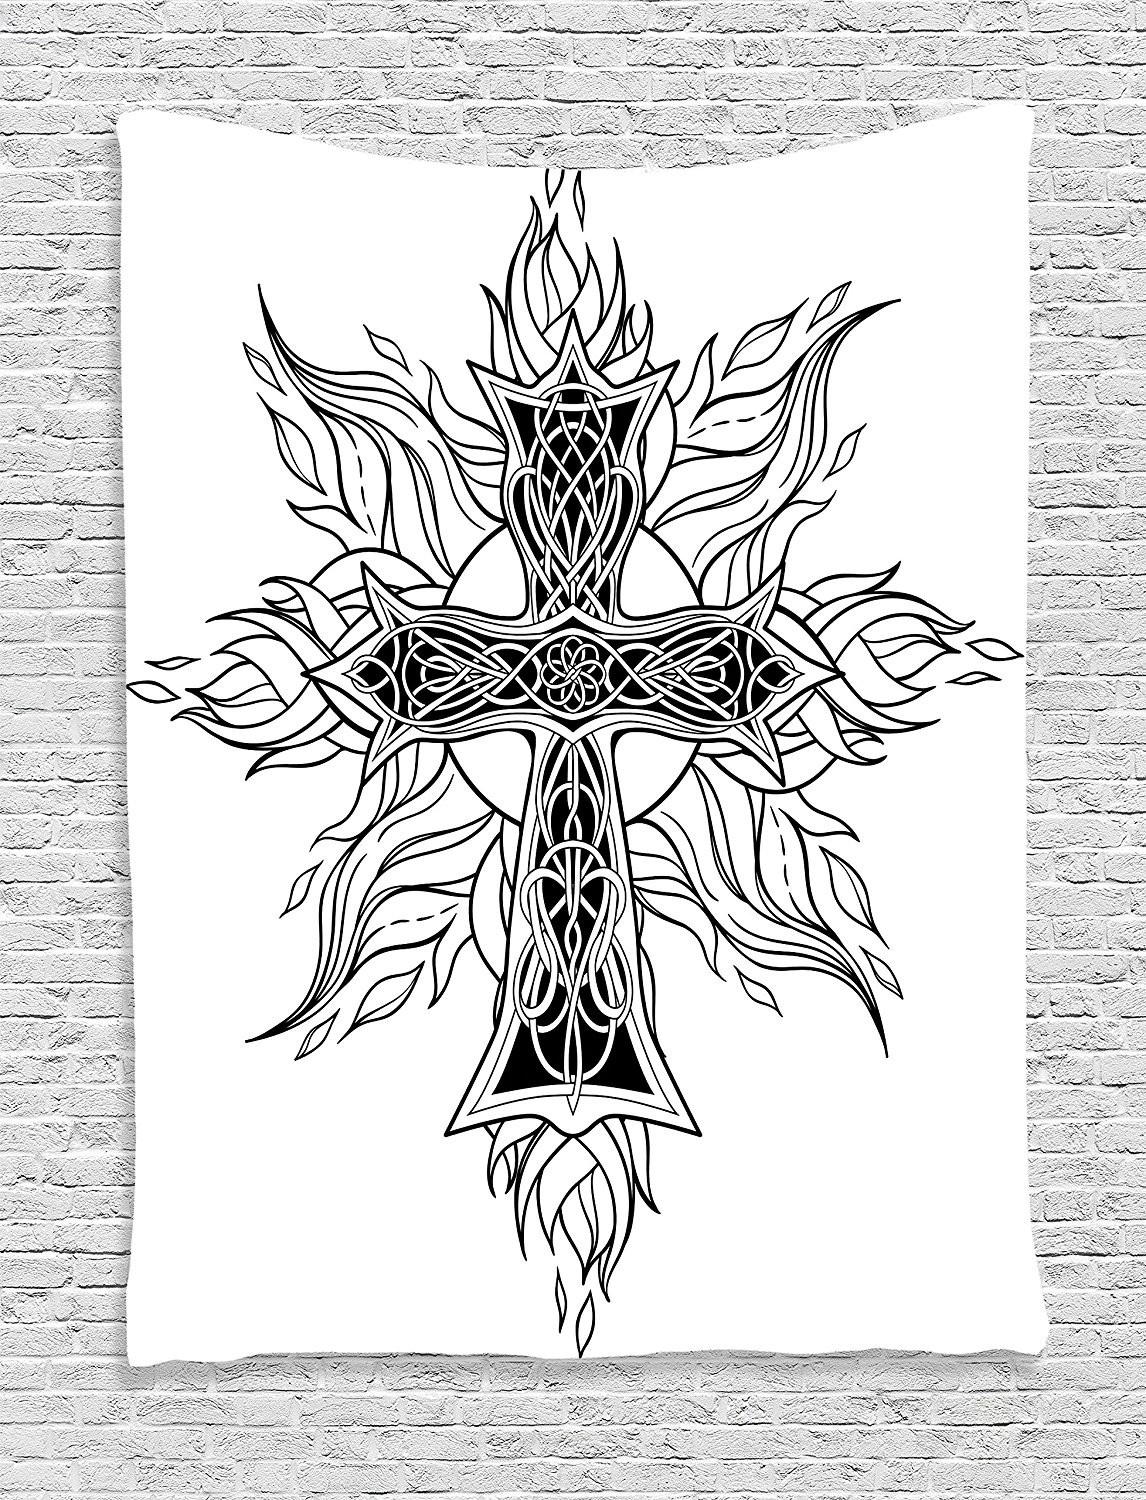 Celtic Decor Tapestry By Ambesonne, Gothic Image Of Cross In Celtic Style With Flames Of Fire Simplistic Traditional Pattern, Bedroom Living Room Dorm Decor, 40Wx60L Inches, Black White